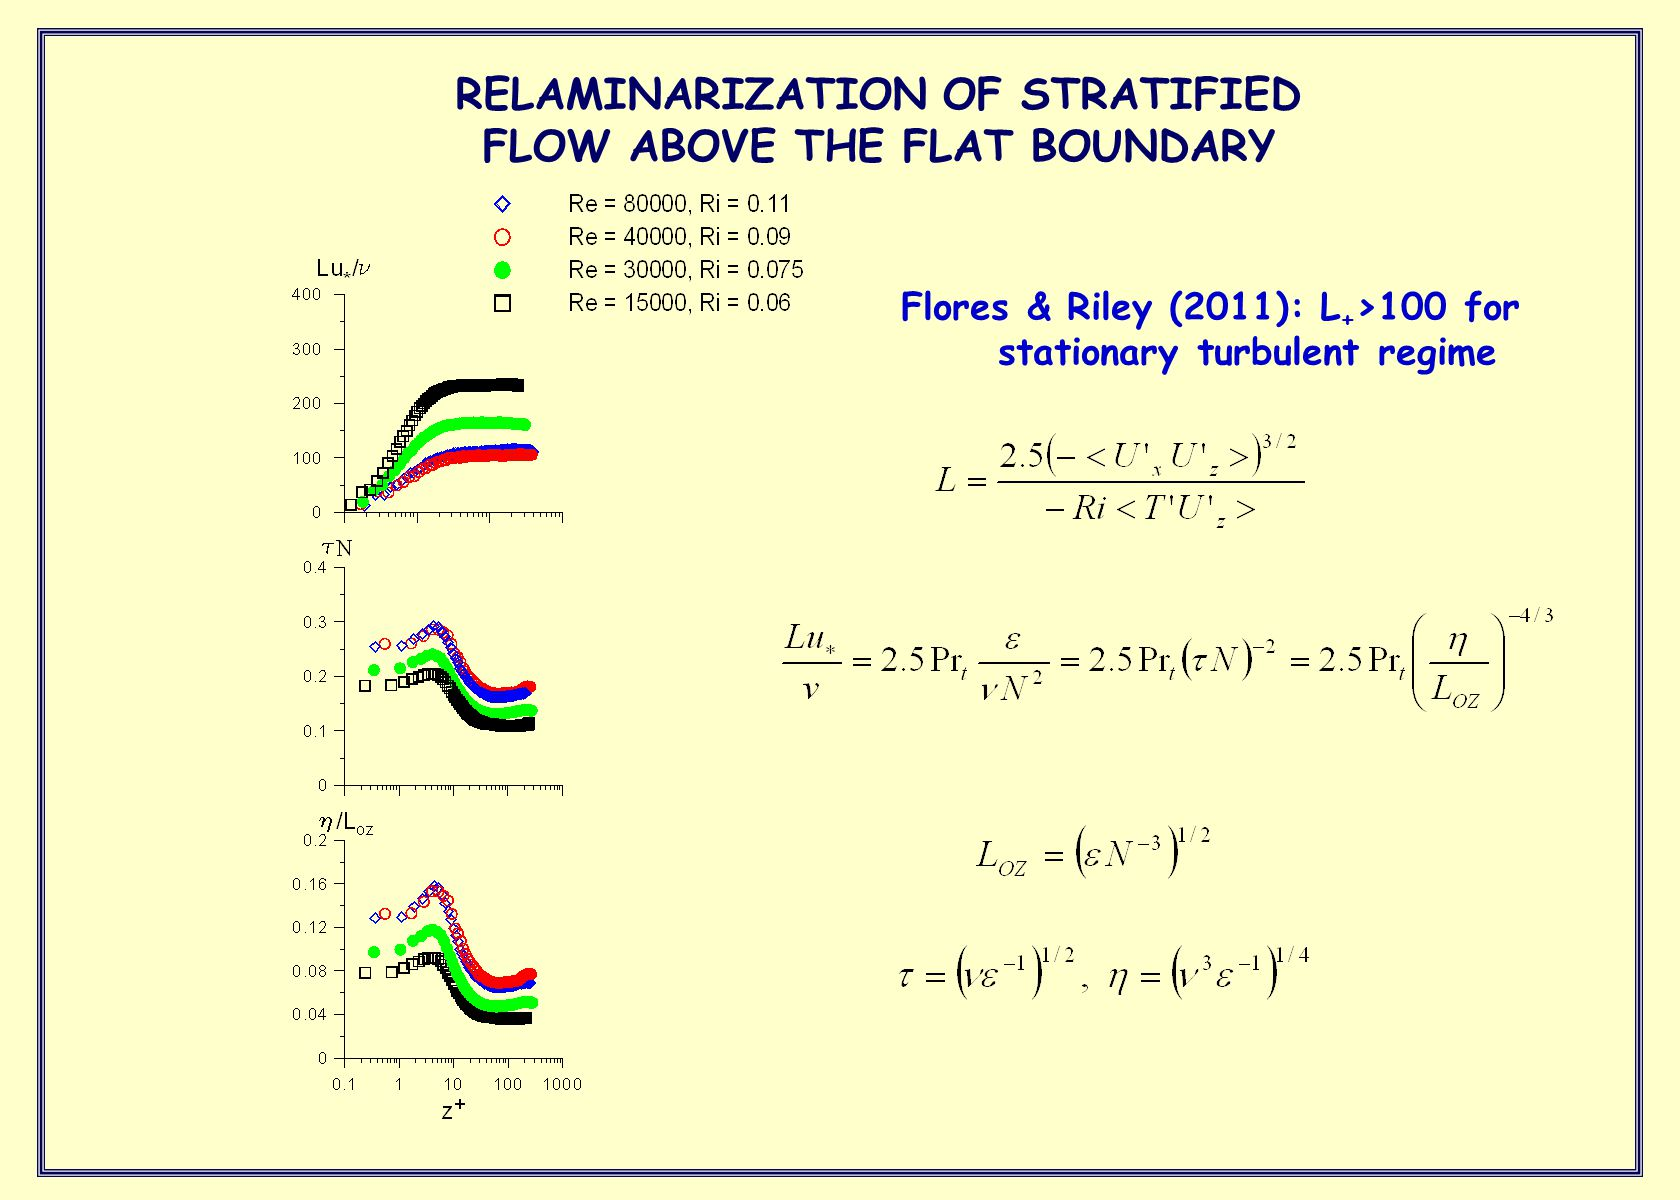 Flores & Riley (2011): L + >100 for stationary turbulent regime RELAMINARIZATION OF STRATIFIED FLOW ABOVE THE FLAT BOUNDARY